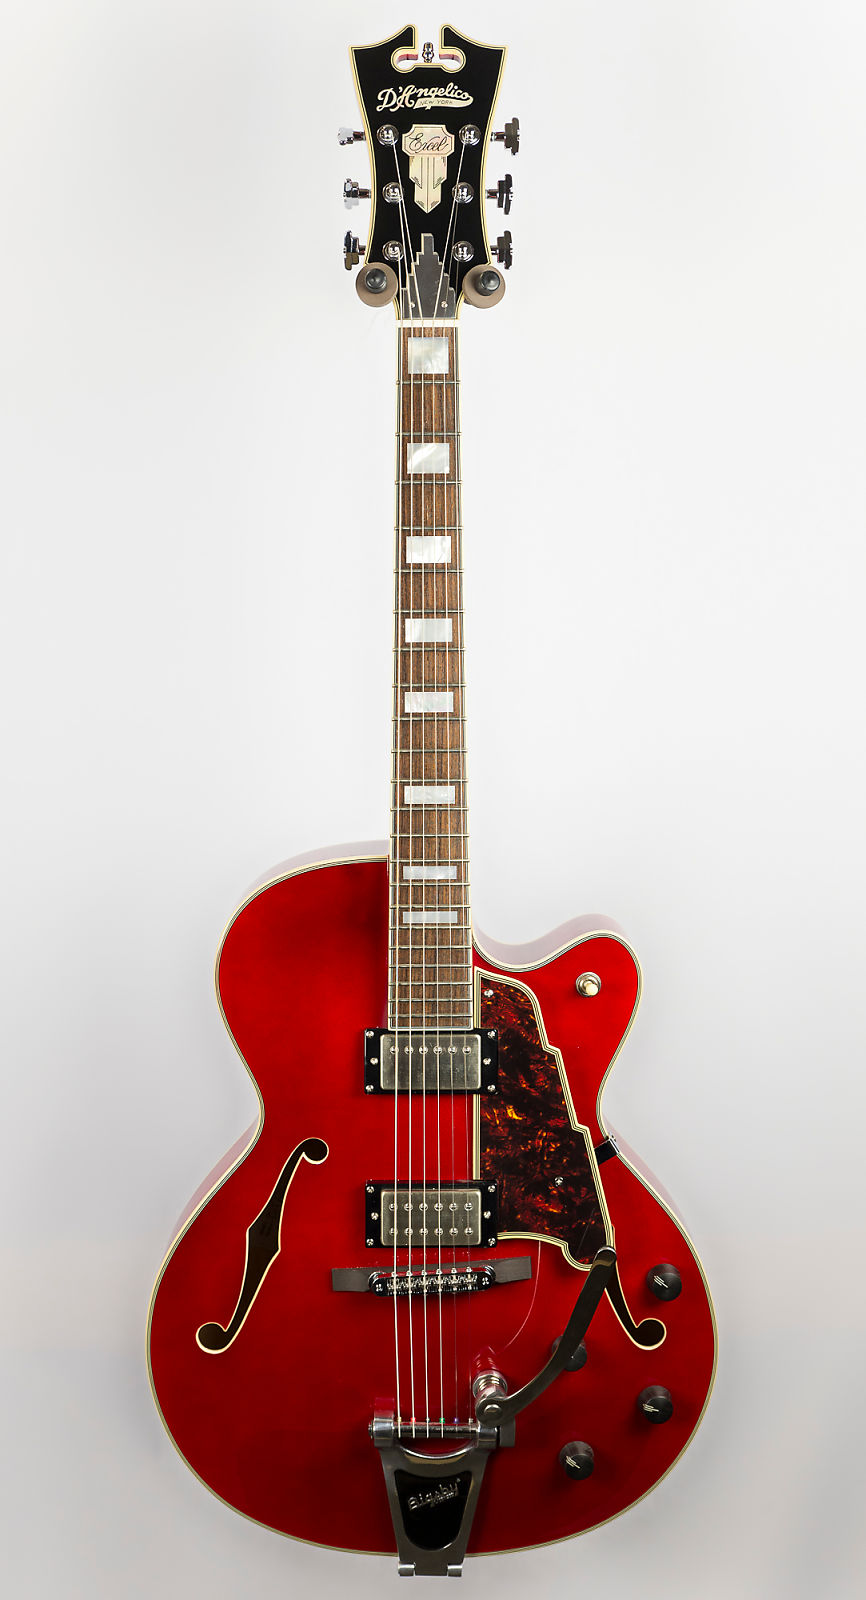 d angelico ex 175 archtop guitar with bigsby